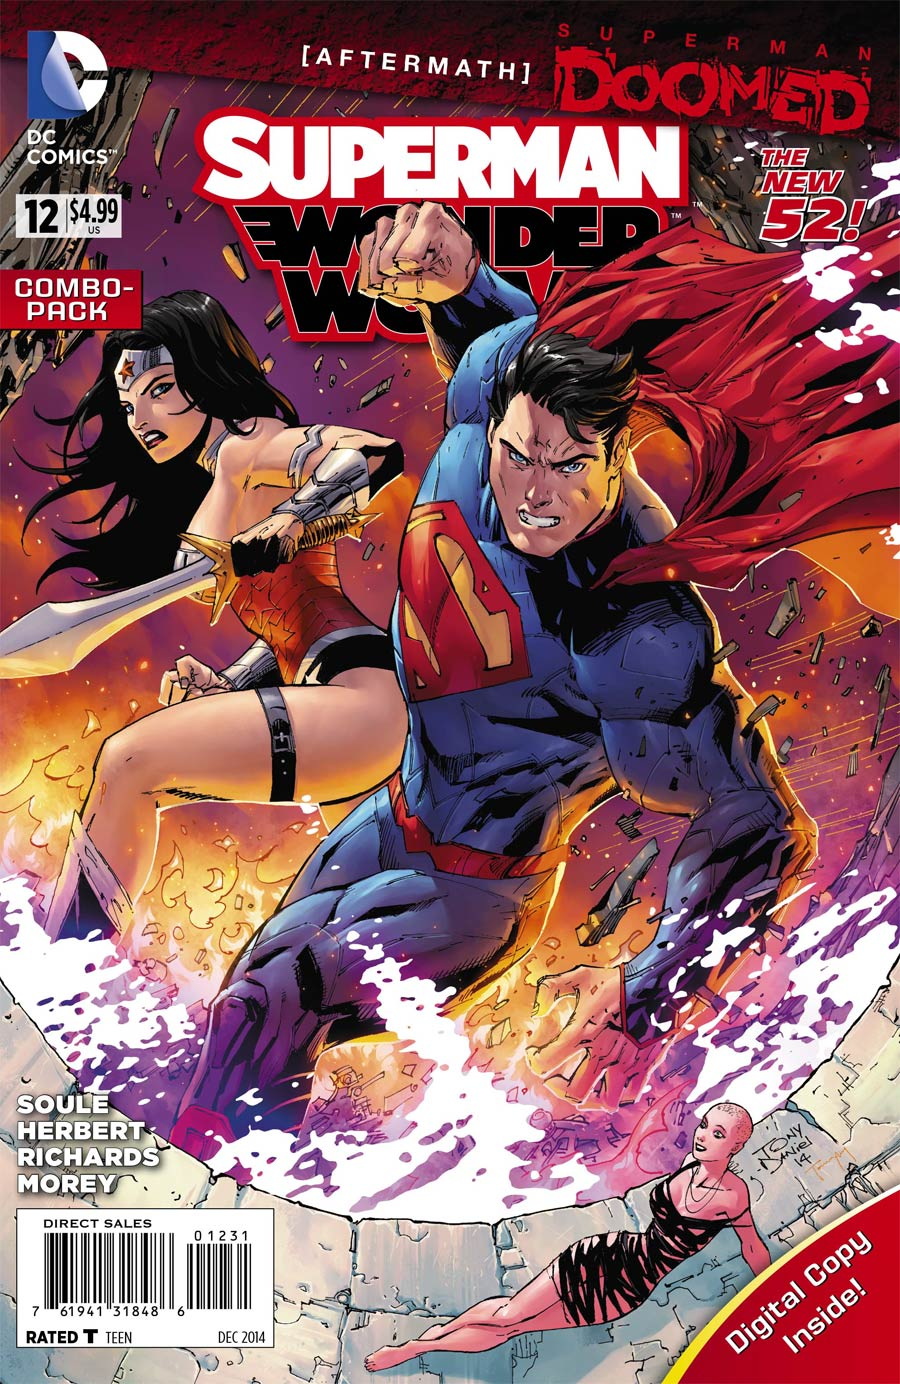 Superman Wonder Woman #12 Cover A Regular Tony S Daniel Cover (Superman Doomed Aftermath)